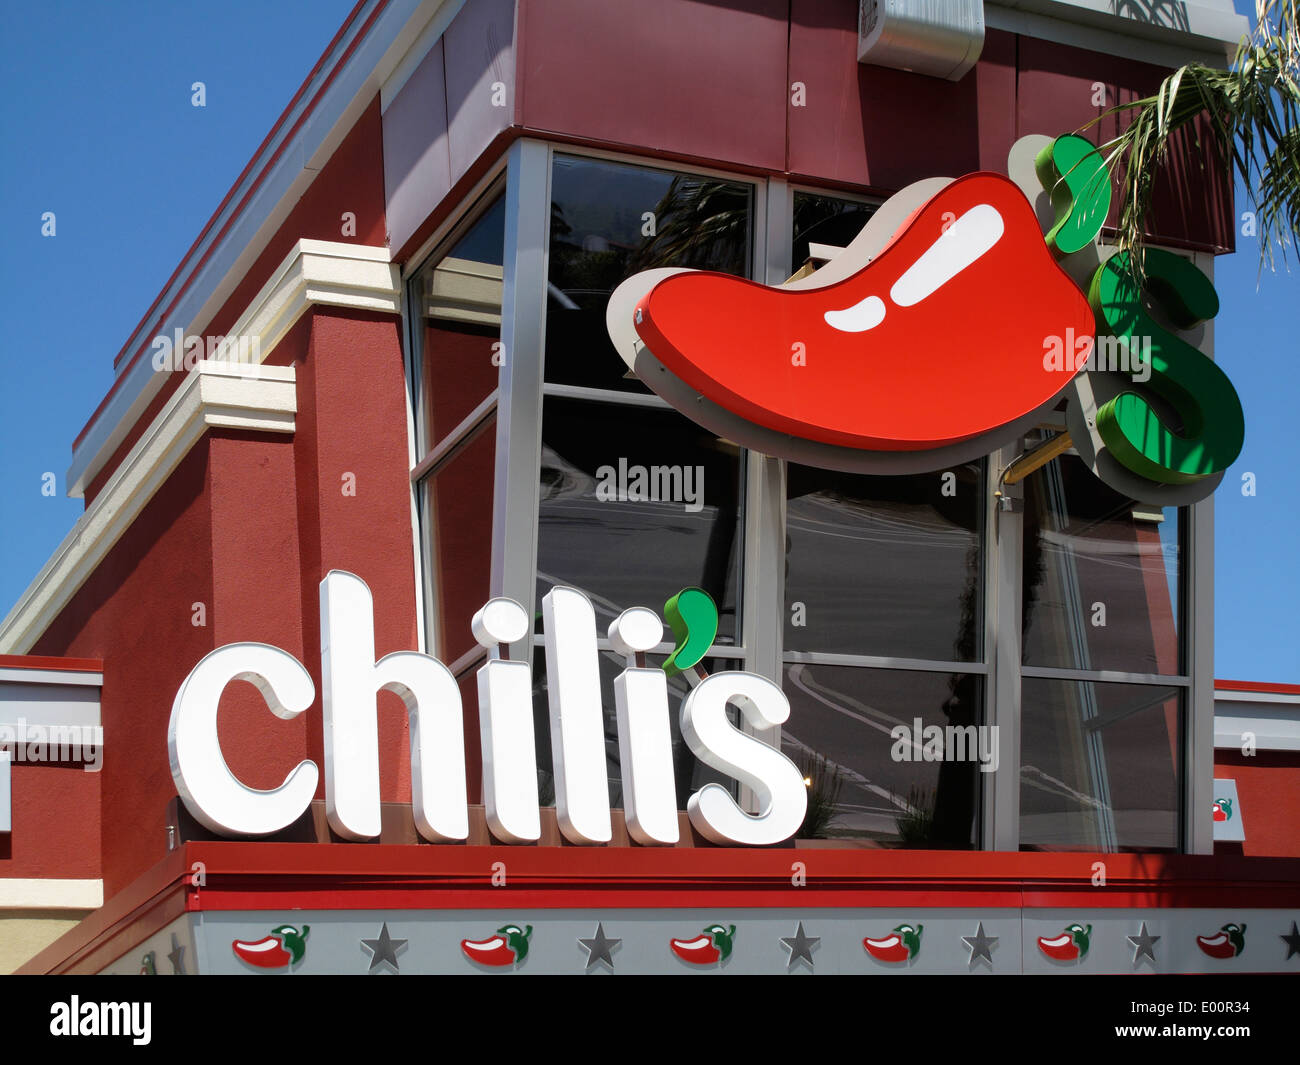 chilis grill bar stock photos chilis grill bar stock images alamy